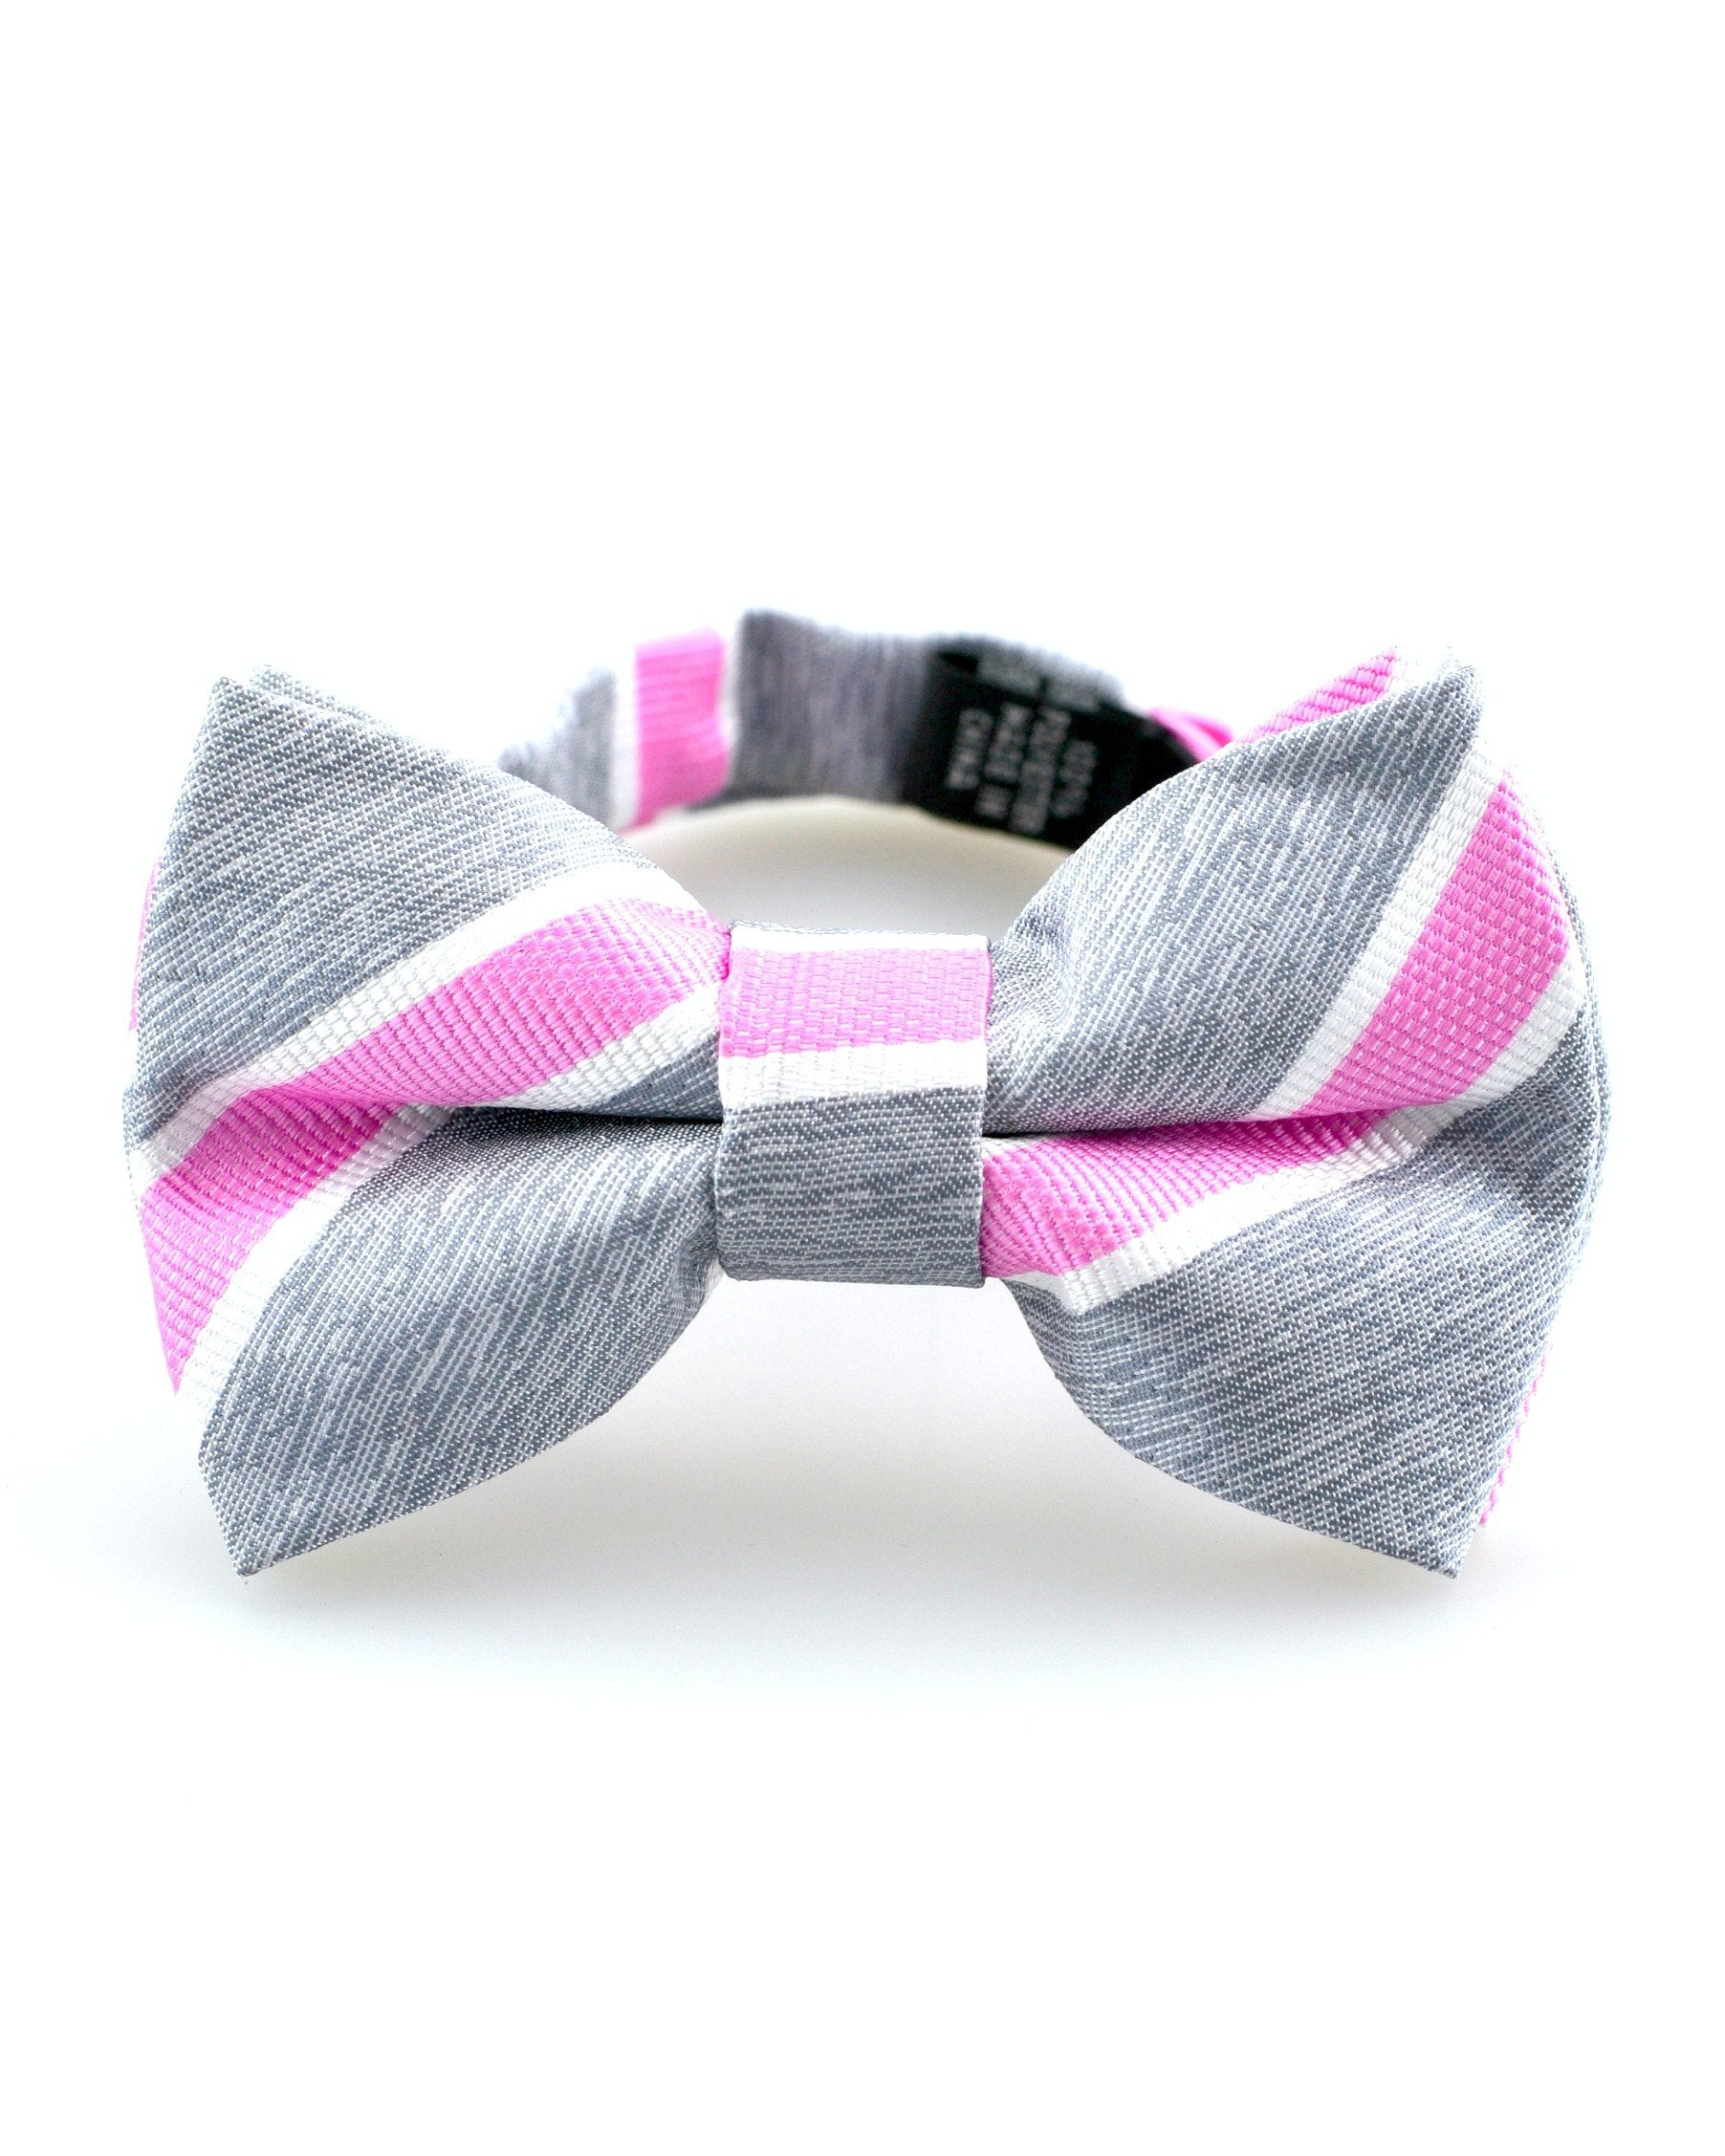 rose-and-slate-stripe-bow-tie.jpg